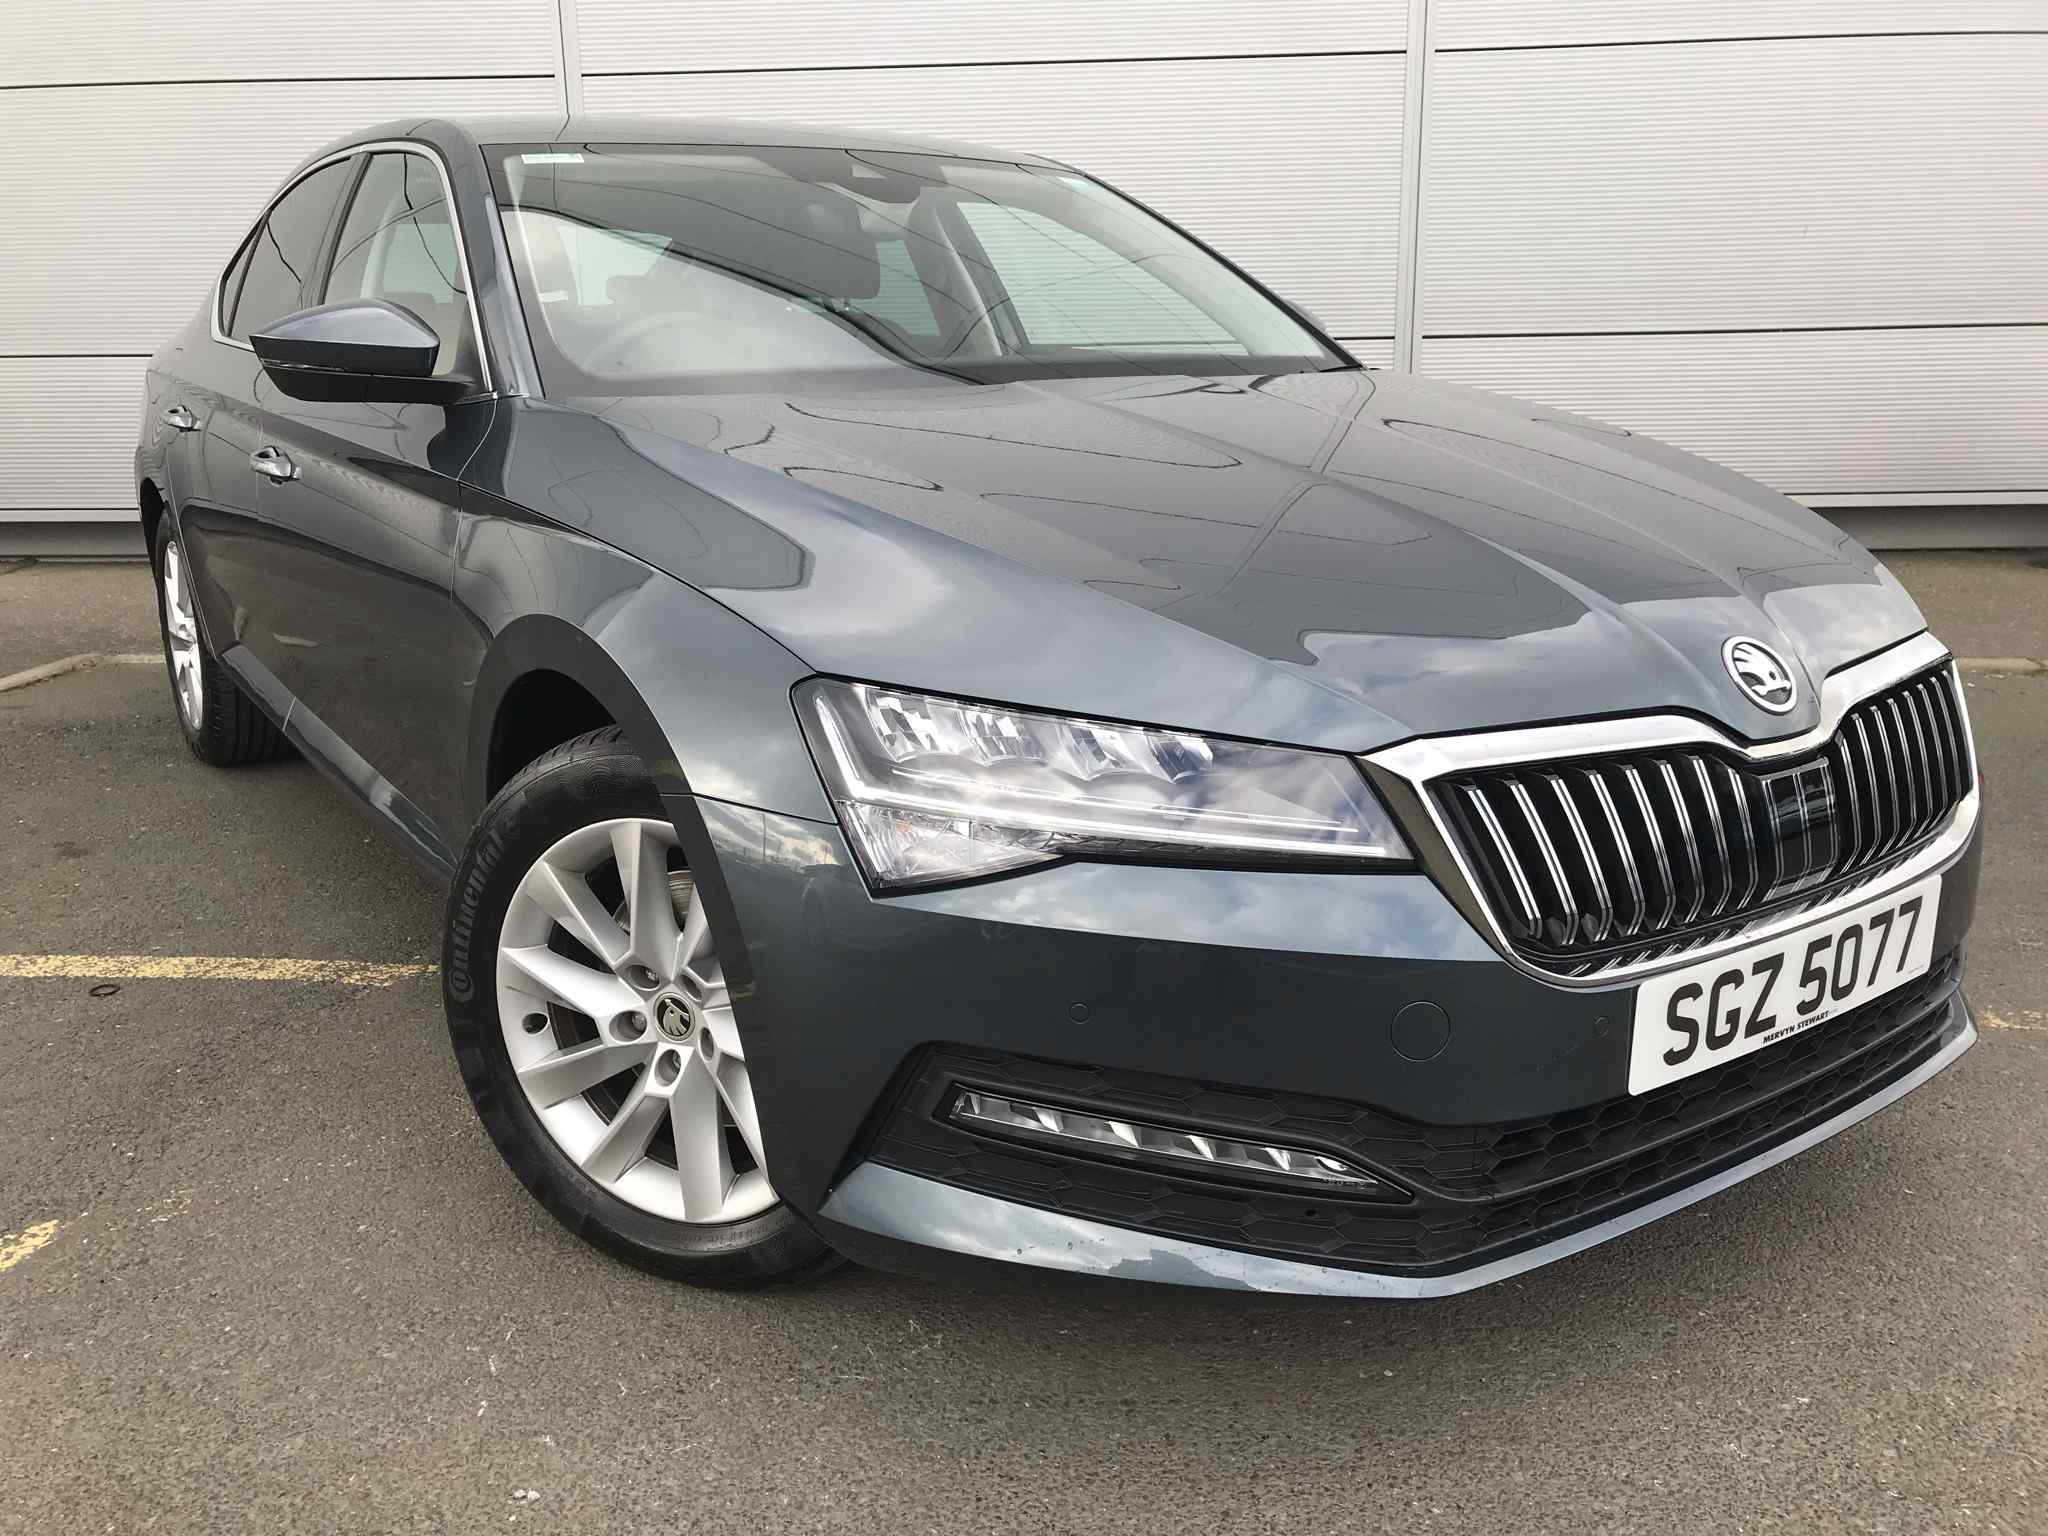 SKODA SUPERB 1.5 TSI SE Technology 5dr DSG